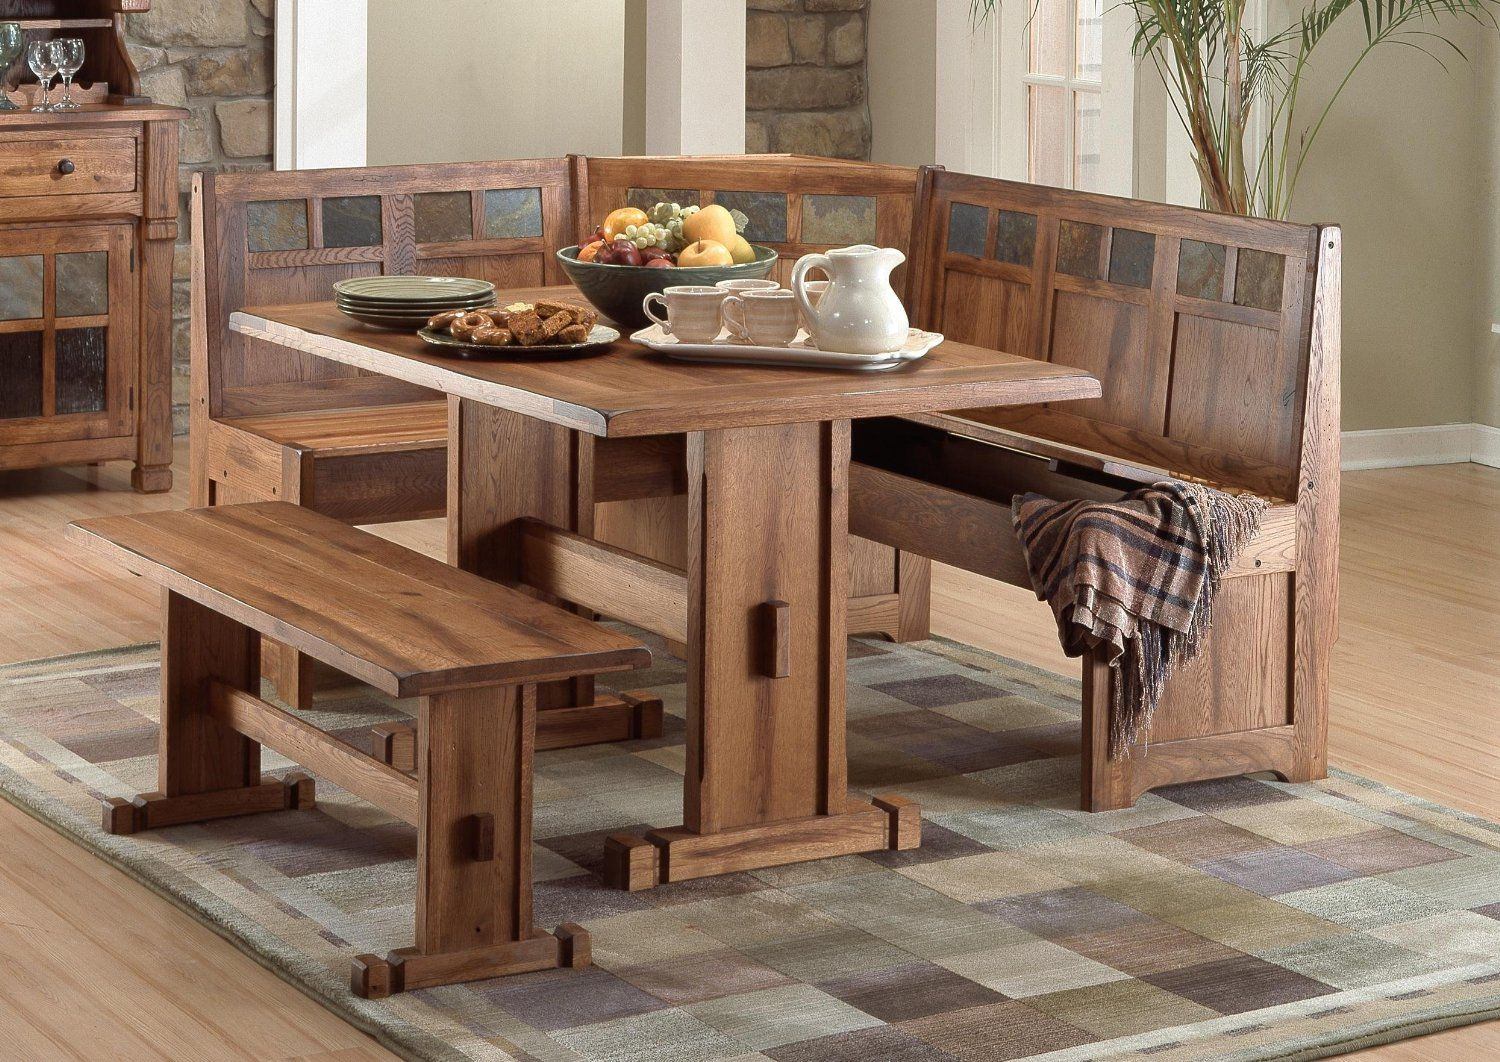 Wood Kitchen Table With Bench Seating Designs Ideas : kitchen table set with bench - pezcame.com